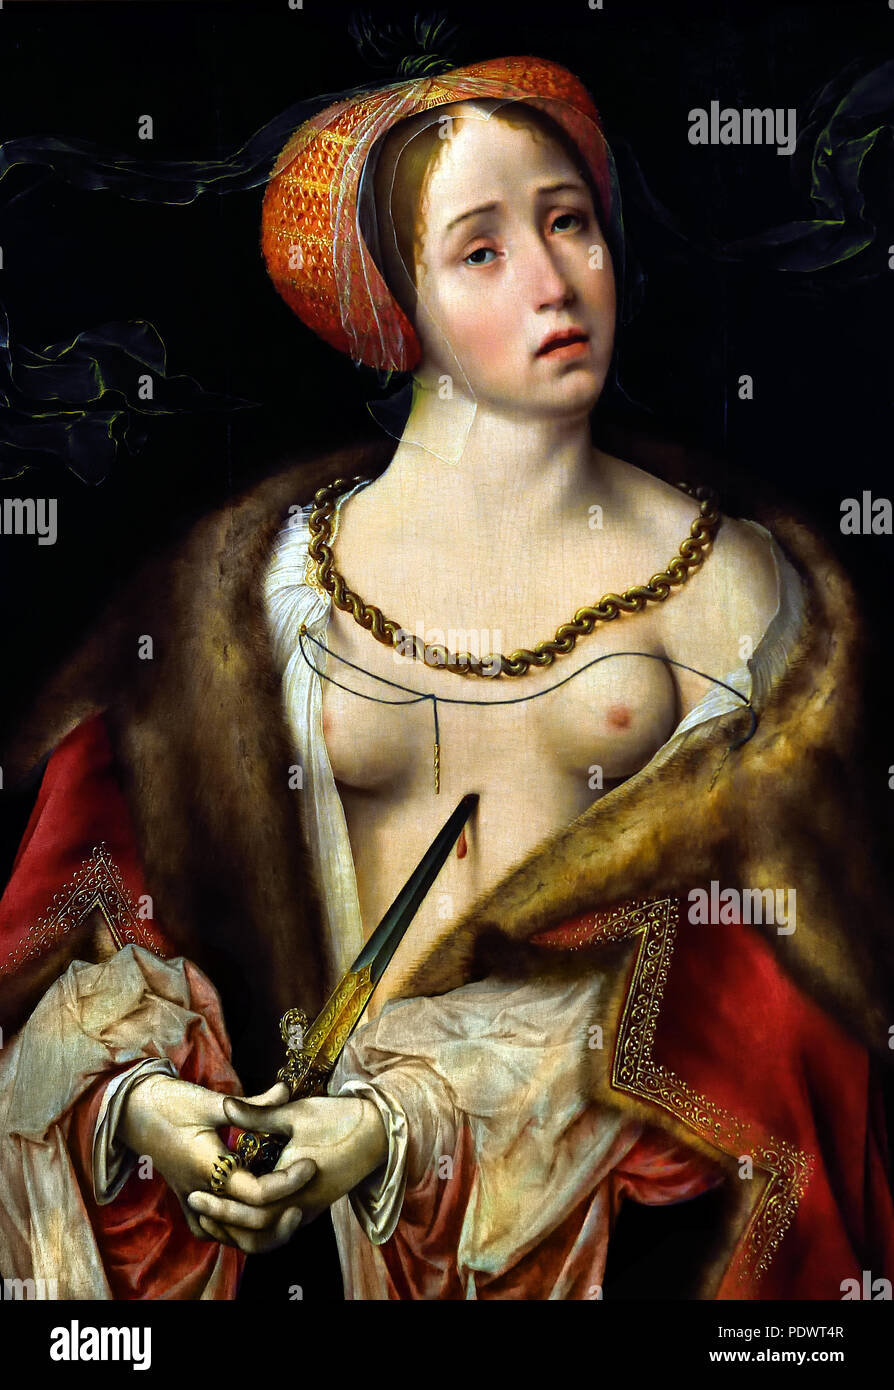 The Suicide of Lucretia, 1520/25 Joos van Cleve (1485-1540/1541) Flemish Belgian Belgium ( Lucretia, legendary heroine of ancient Rome. According to tradition, she was the beautiful and virtuous wife of the nobleman Lucius Tarquinius Collatinus. Her tragedy began when she was raped by Sextus Tarquinius, son of Lucius Tarquinius Superbus, the tyrannical Etruscan king of Rome.  ) Stock Photo